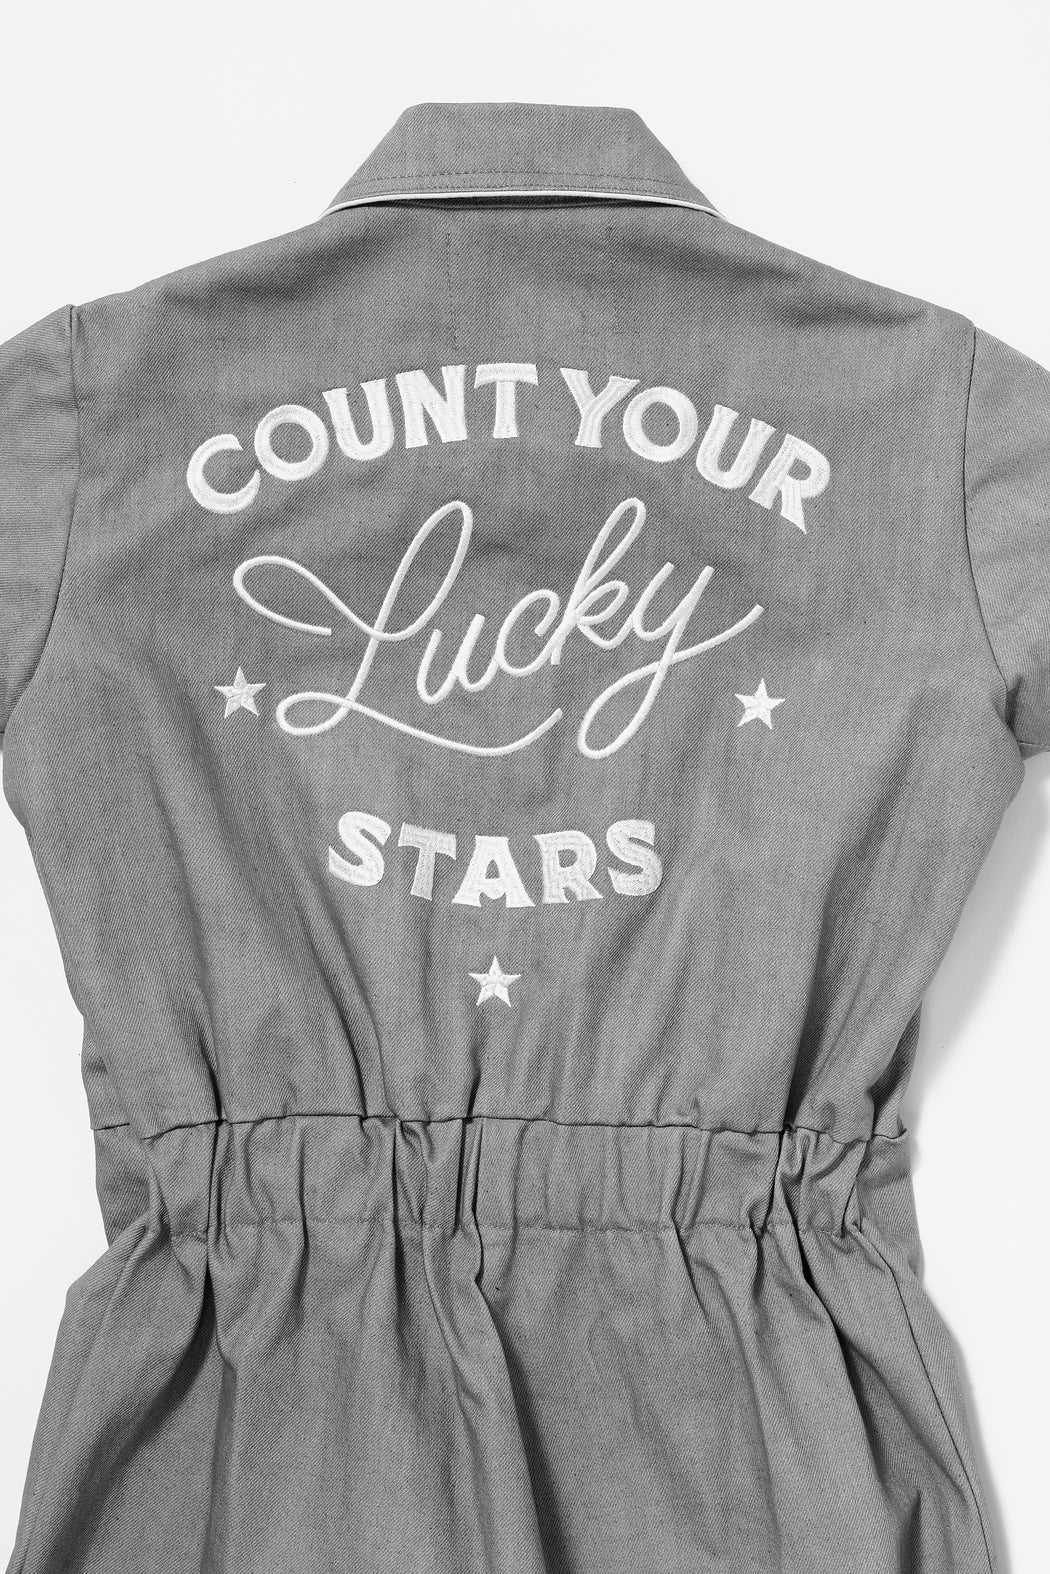 LUCKY STARS JUMPSUIT IN SMOKE